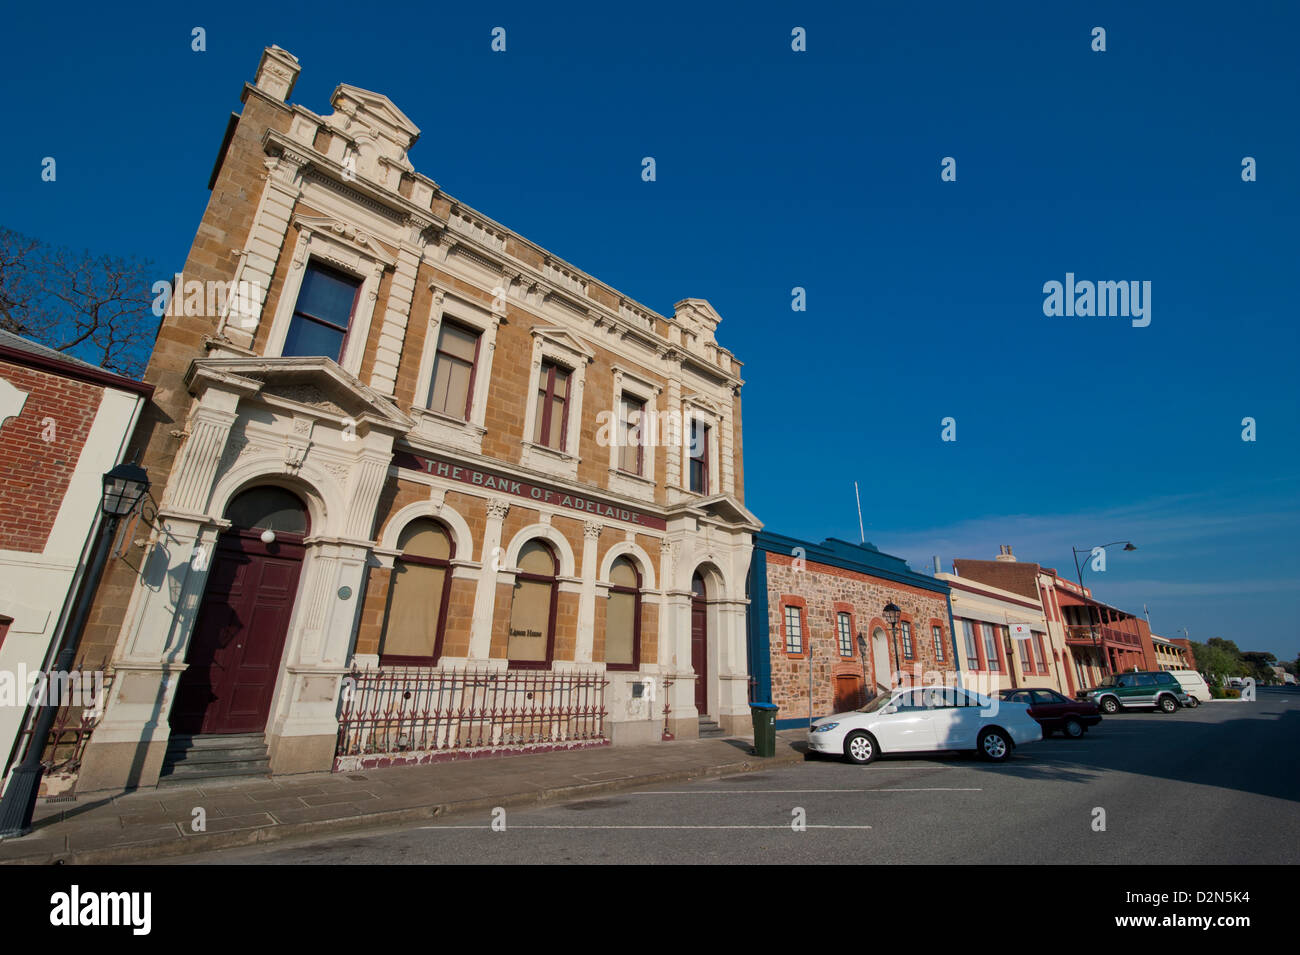 Kolonialarchitektur in Port Adelaide, South Australia, Australien, Pazifik Stockbild